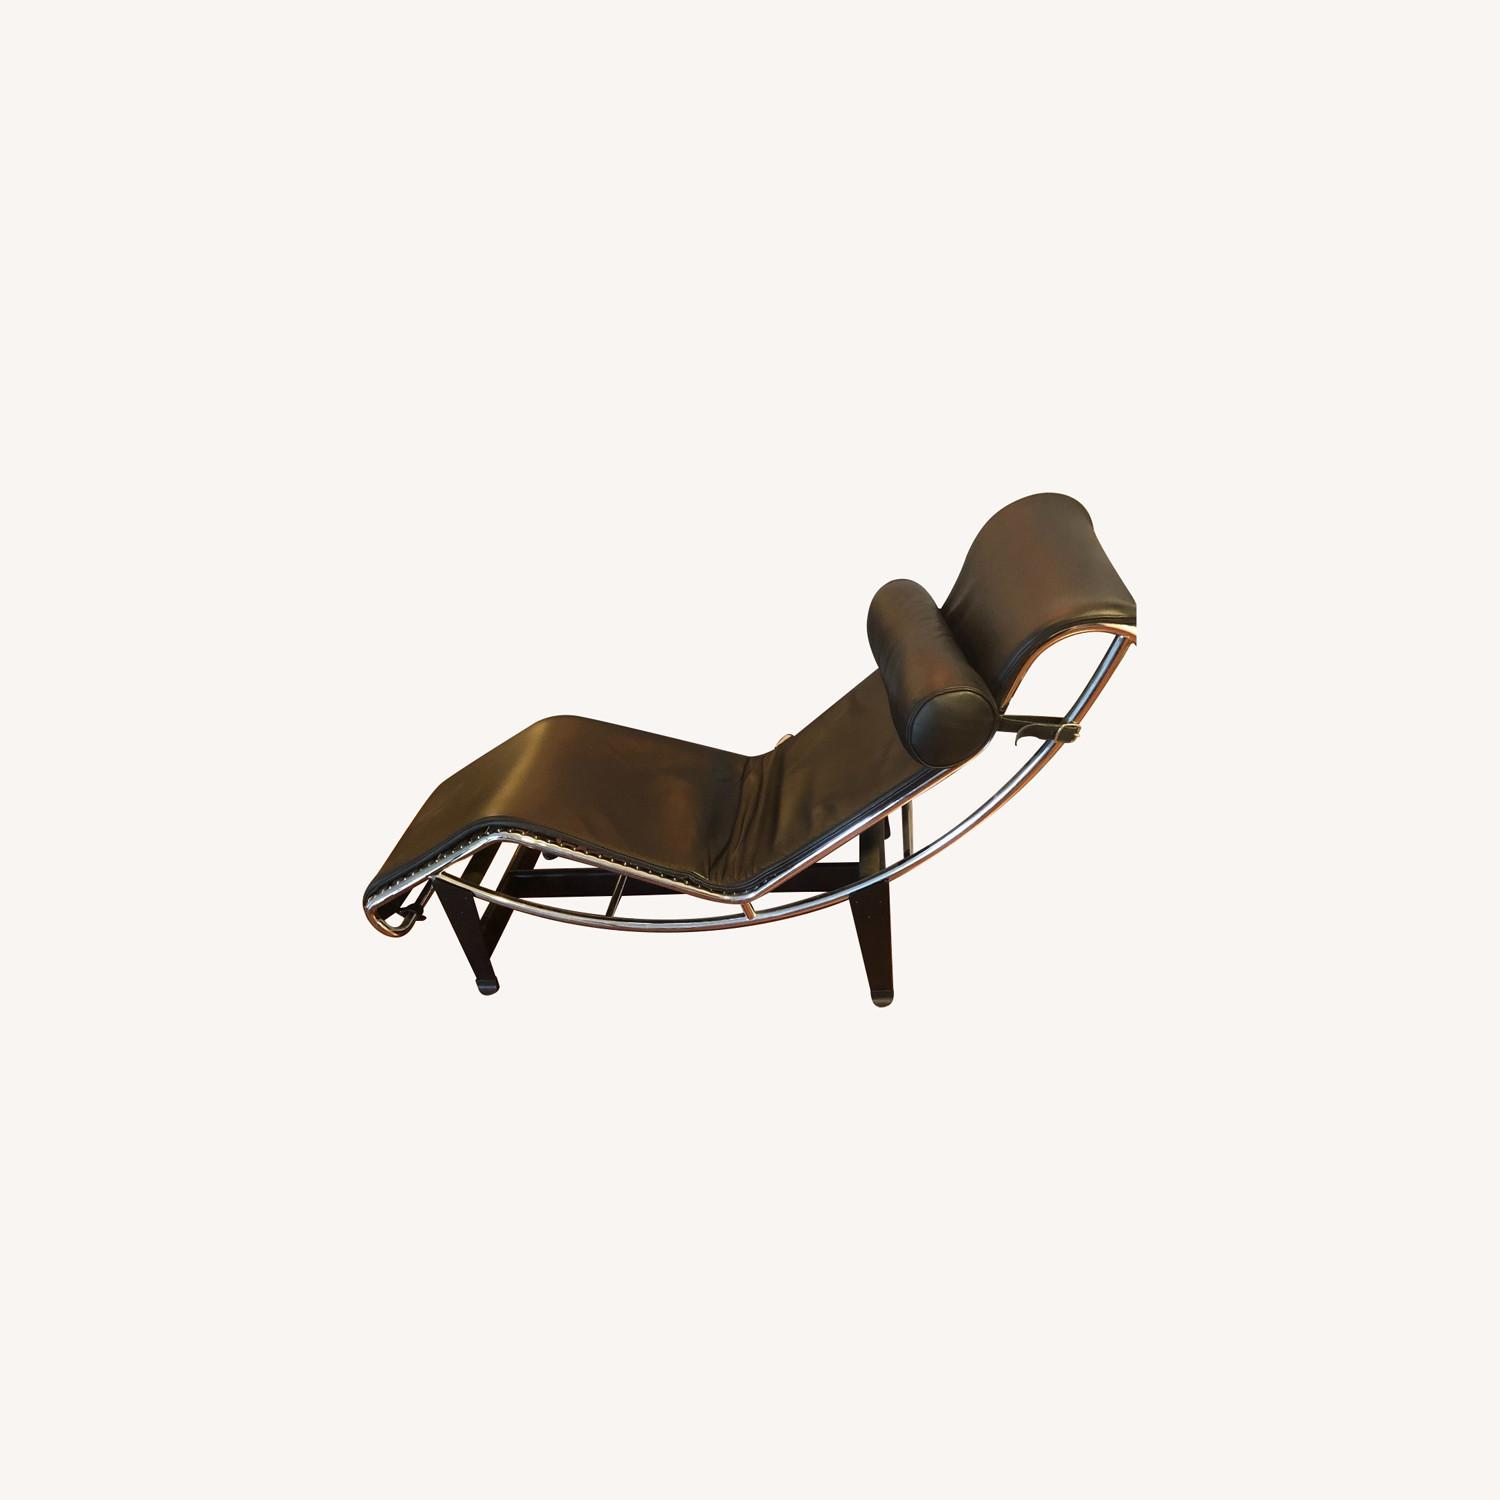 Authentic Cassina LC4 Chaise Lounge - image-0